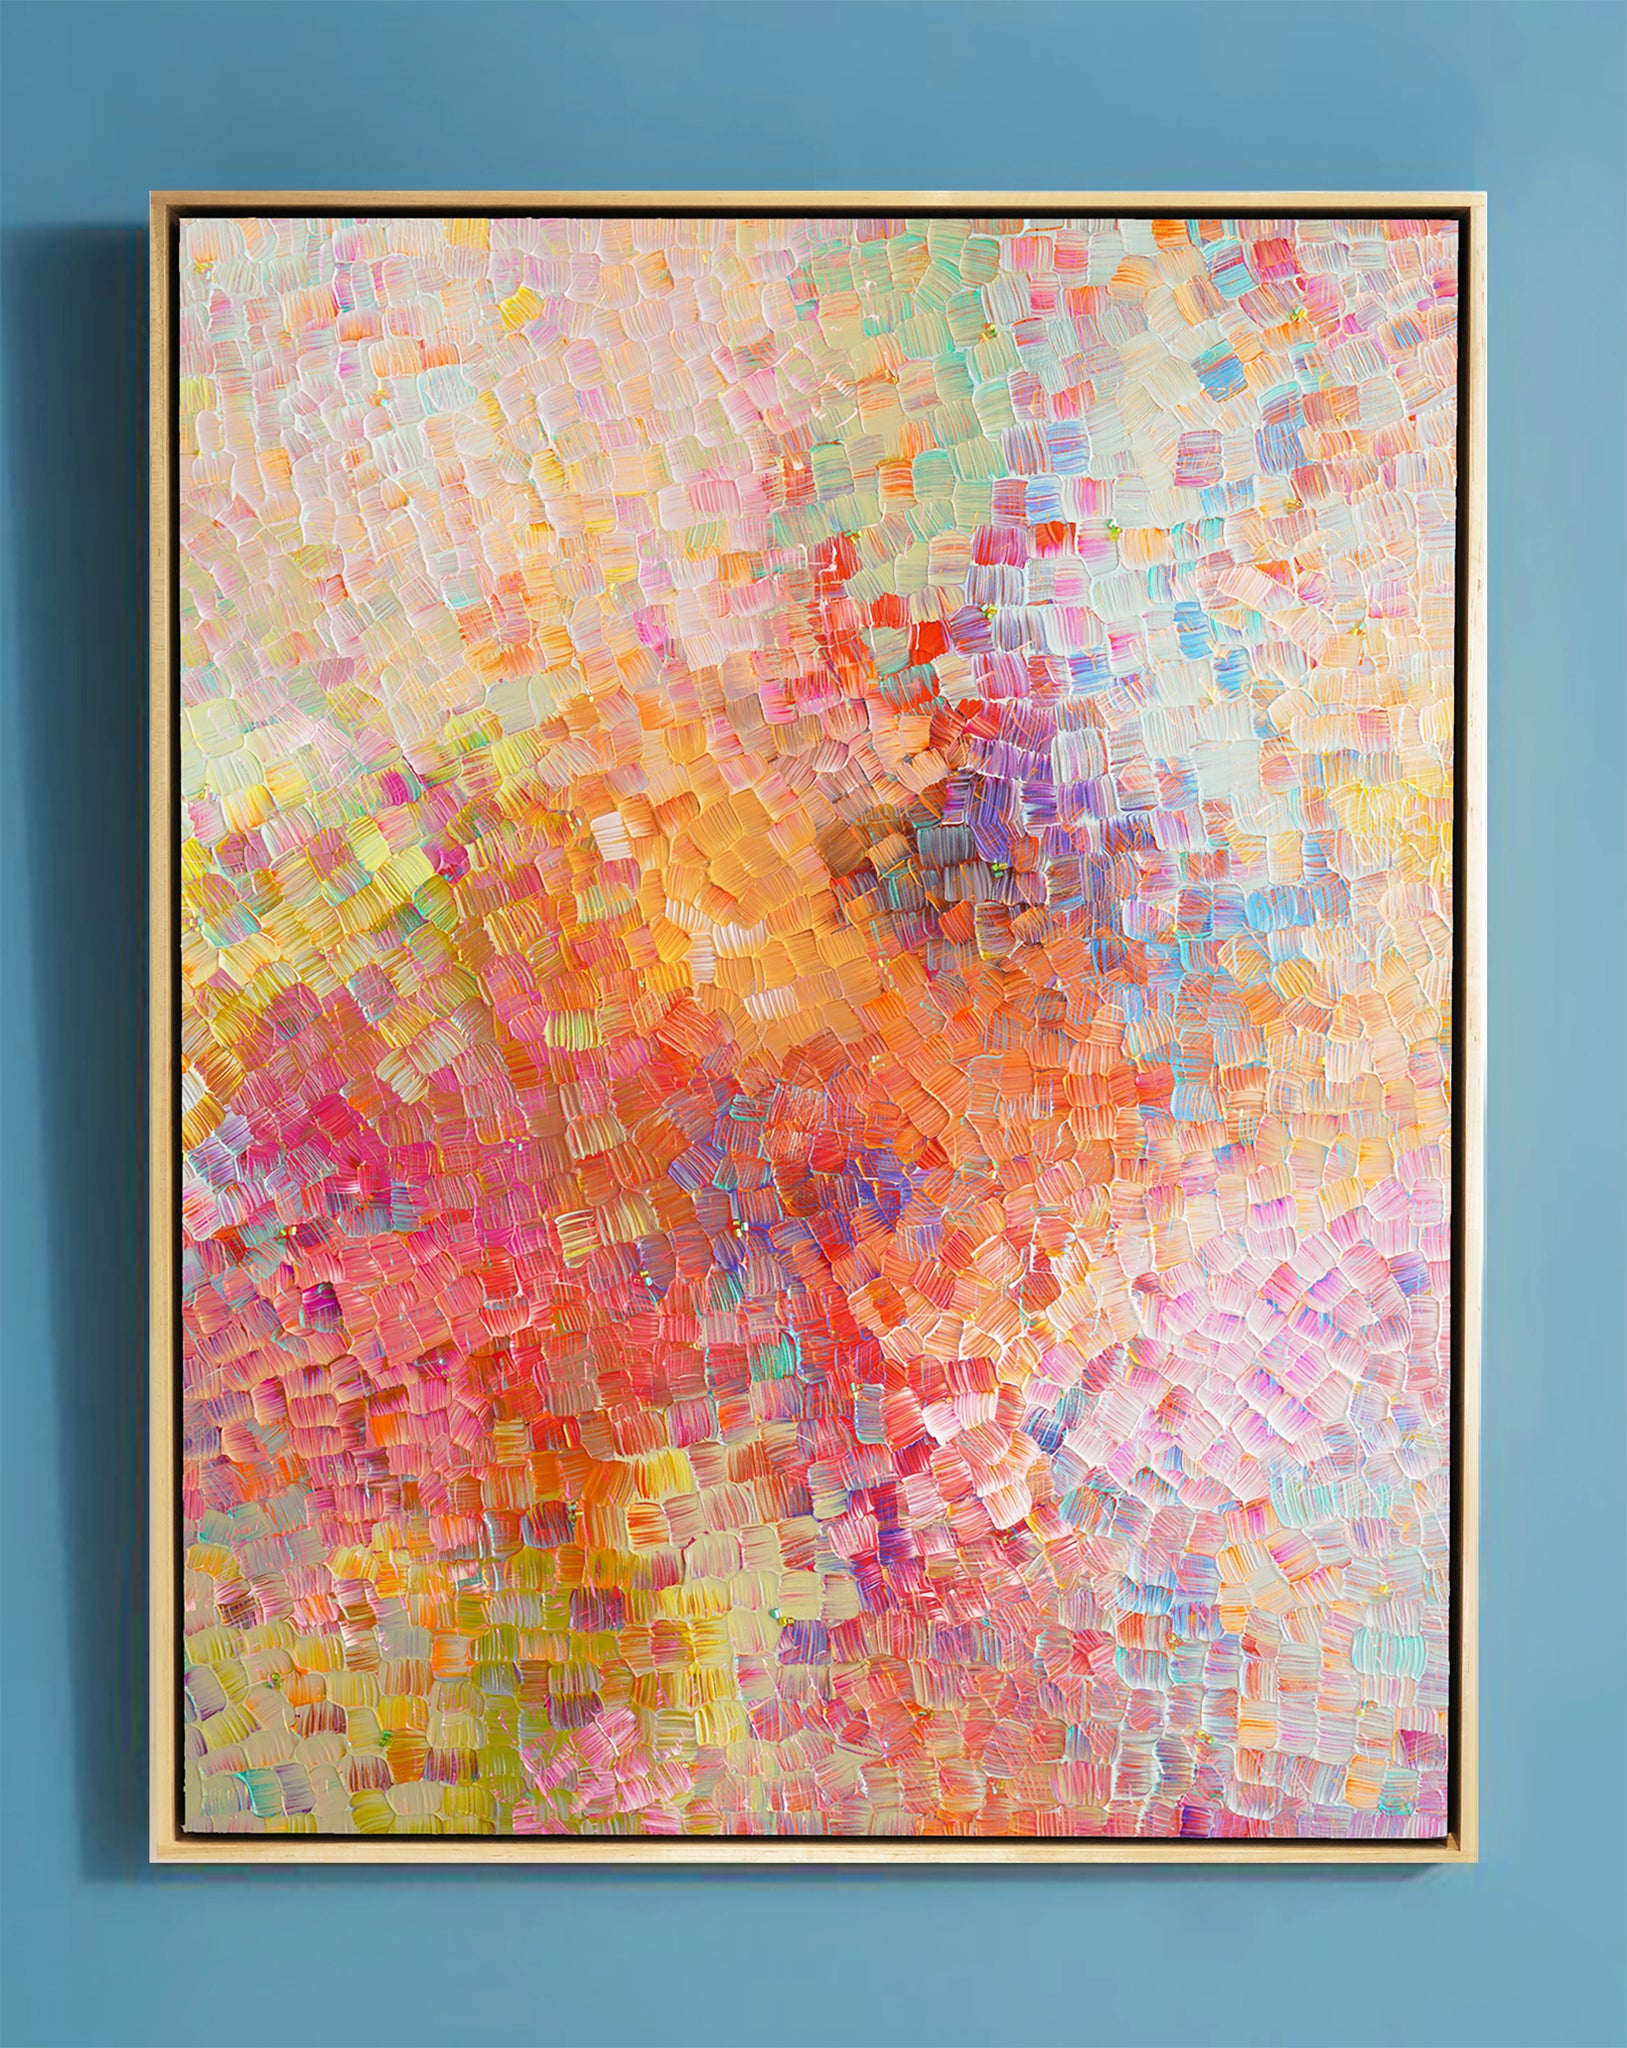 "My Summer Heart -61.25"" X 46.25"" X 2.5"" Framed"